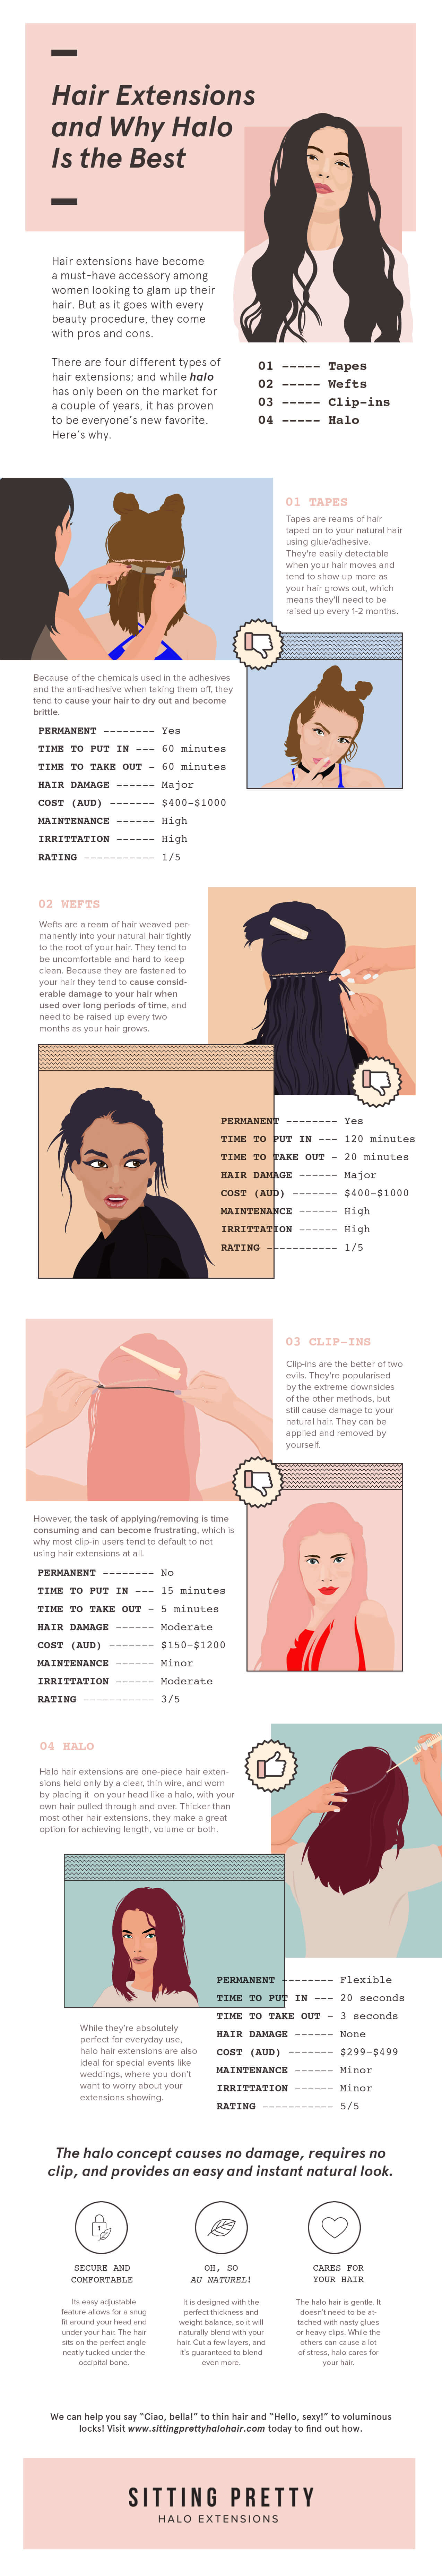 halo-hair-extensions-sitting-pretty-infographic-plaza